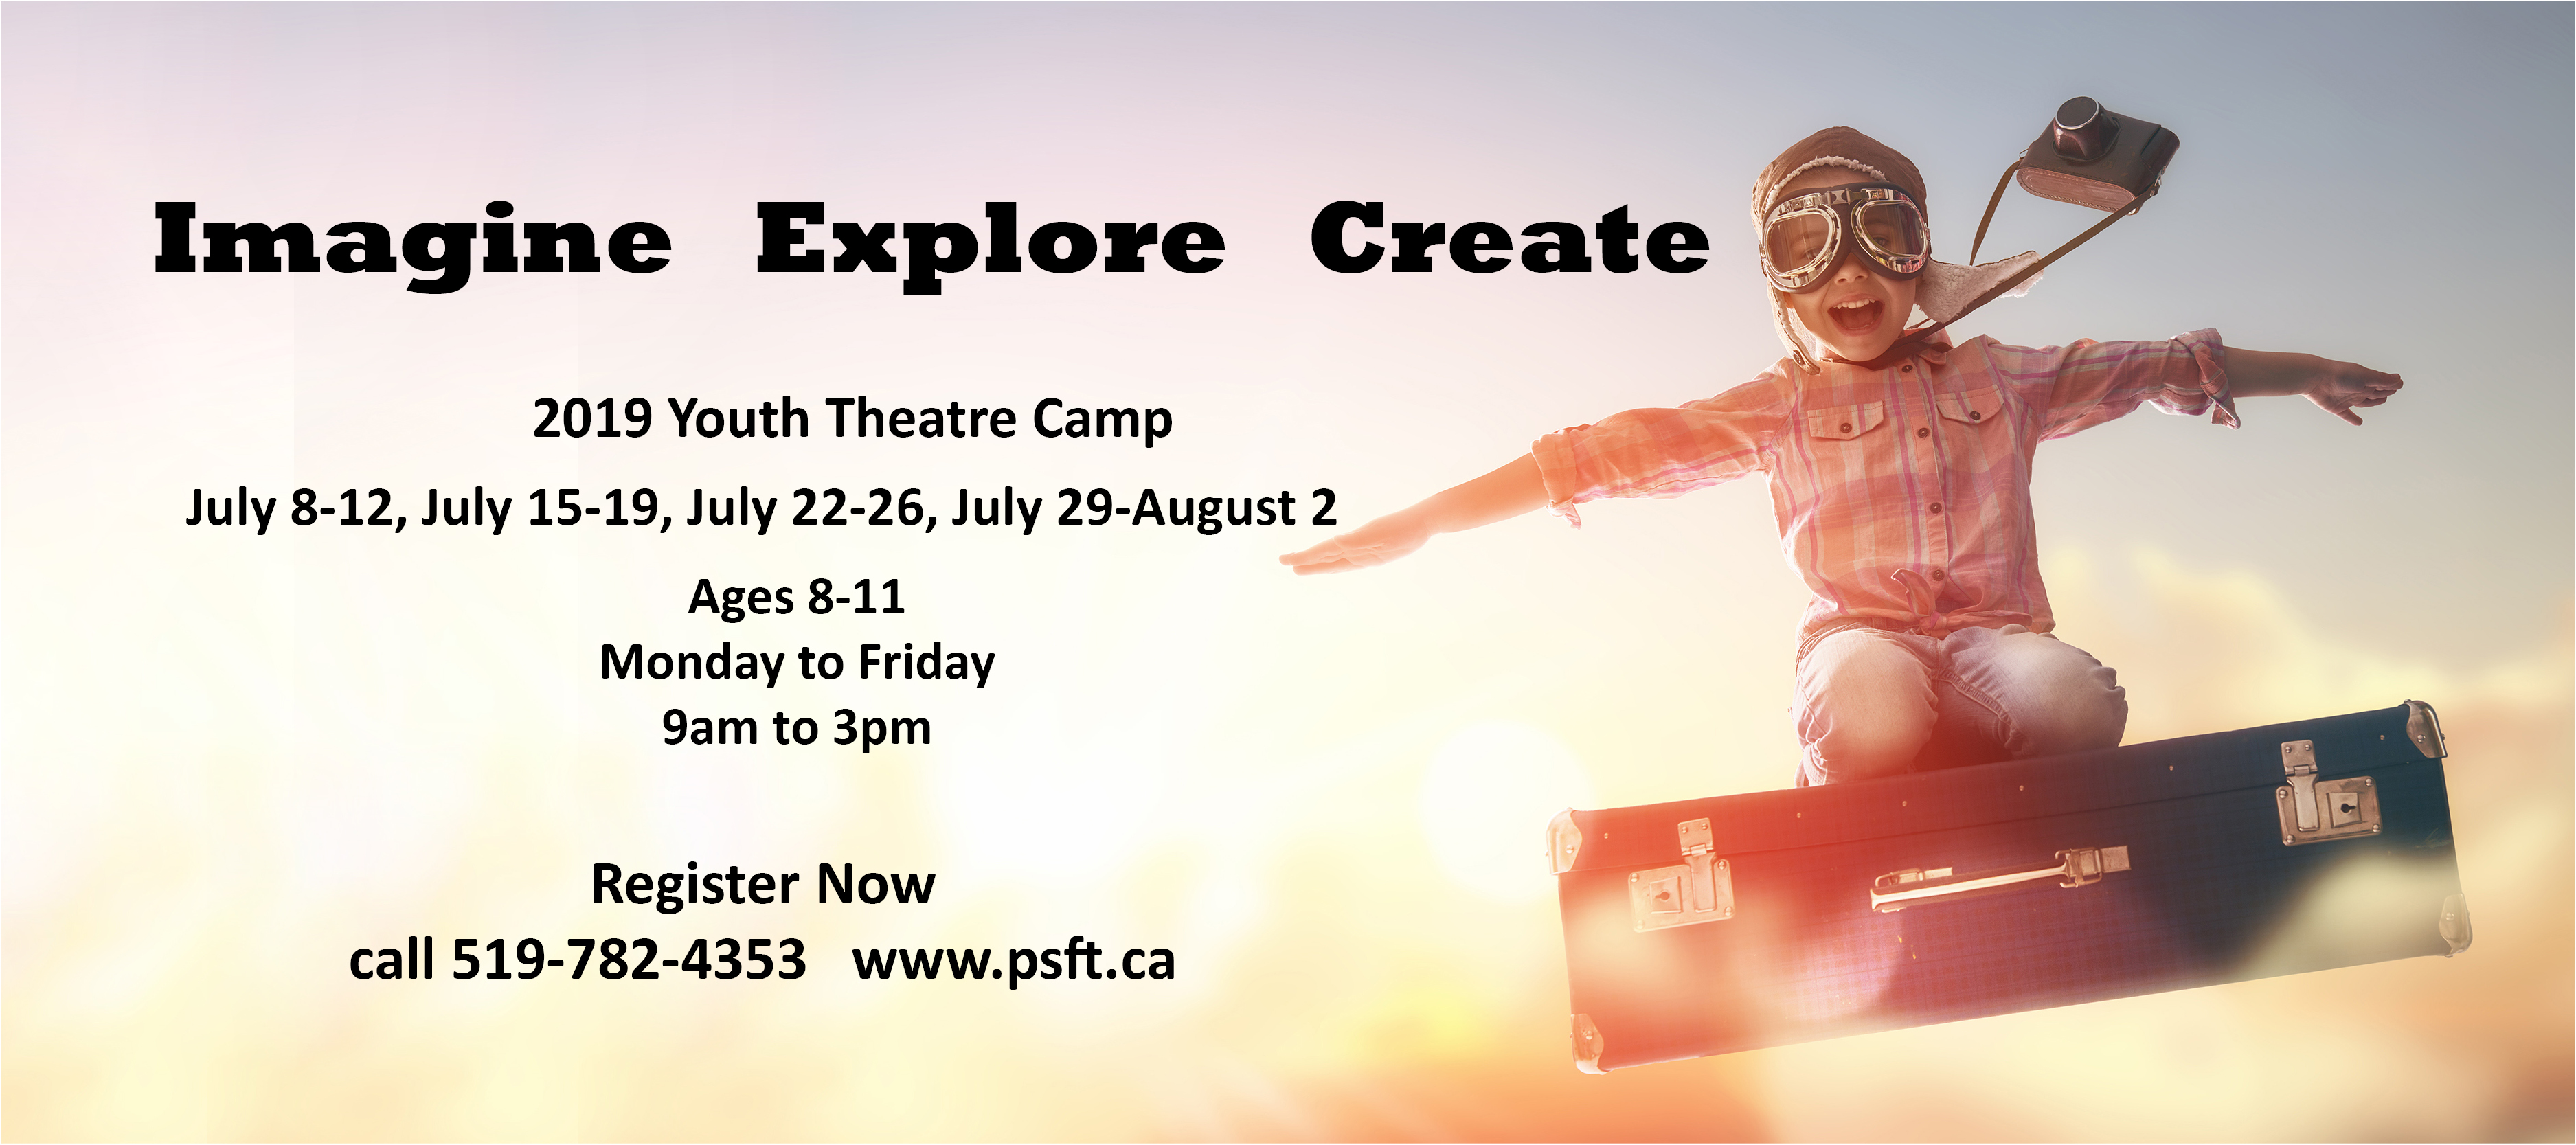 2019 Summer Youth Theatre Camp